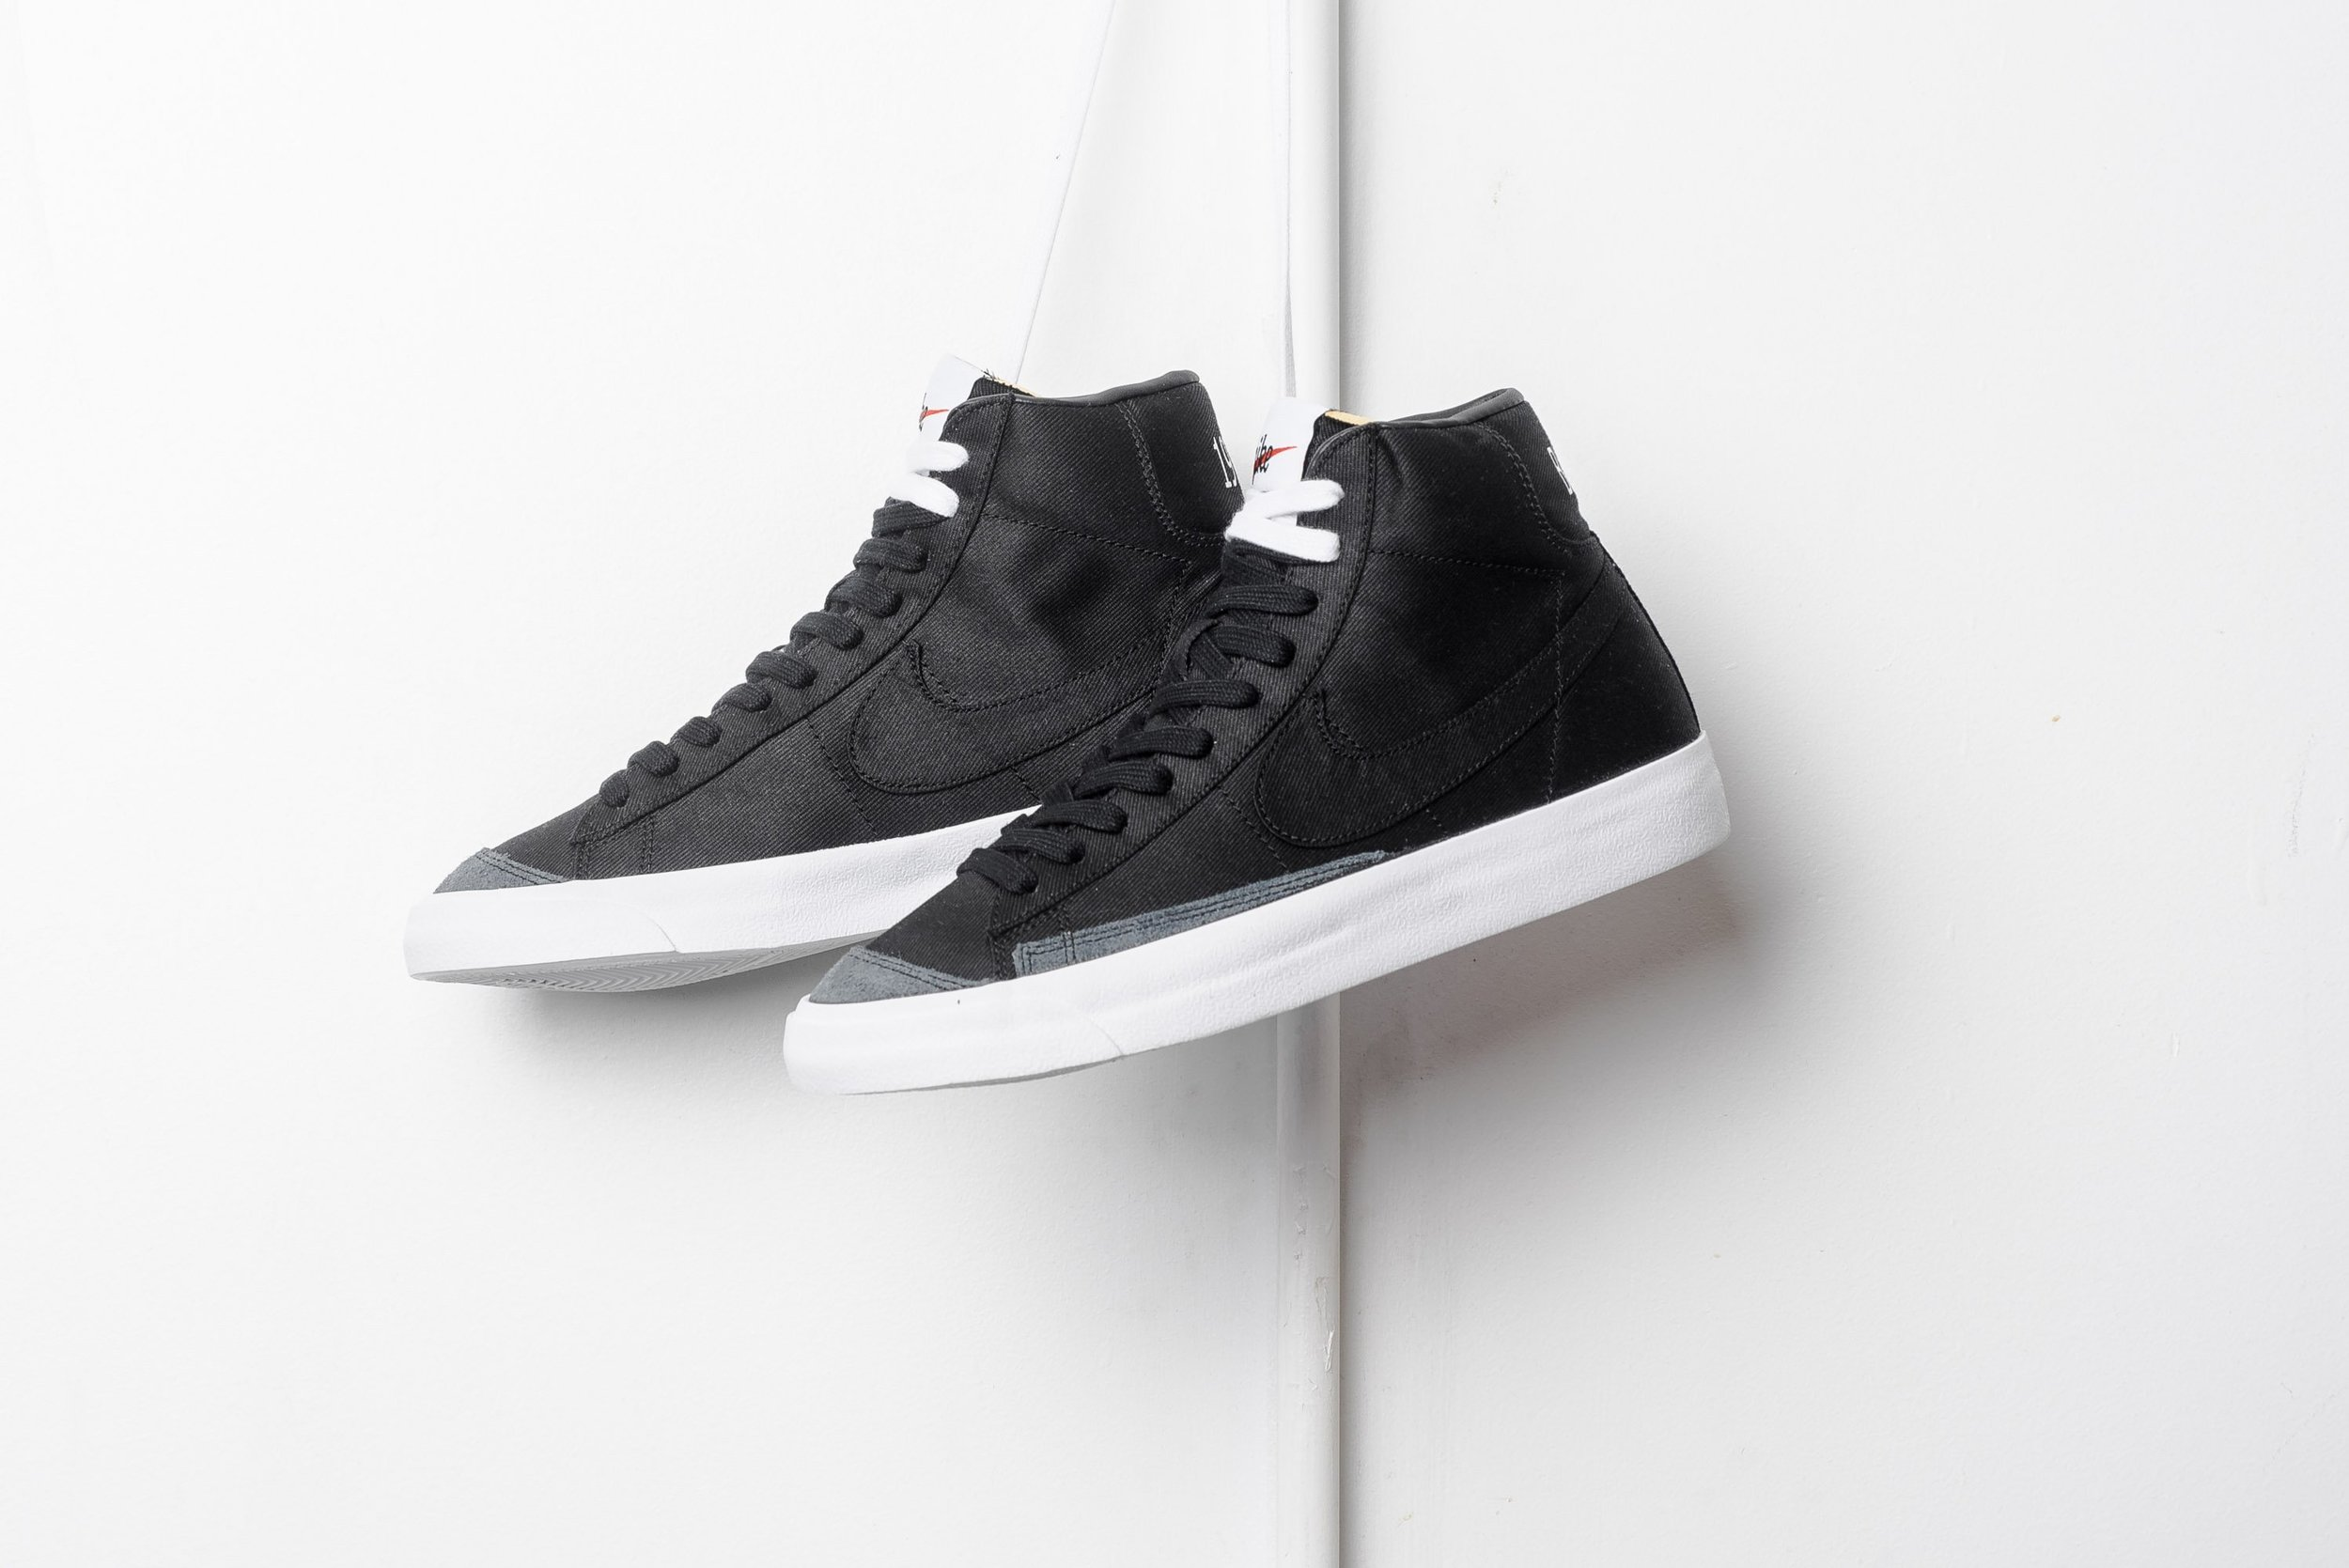 Nike_Blazer_Mid_77_Vintage_WE_Black_Black_White_cd8238-001_sneaker_politics_-5.jpg